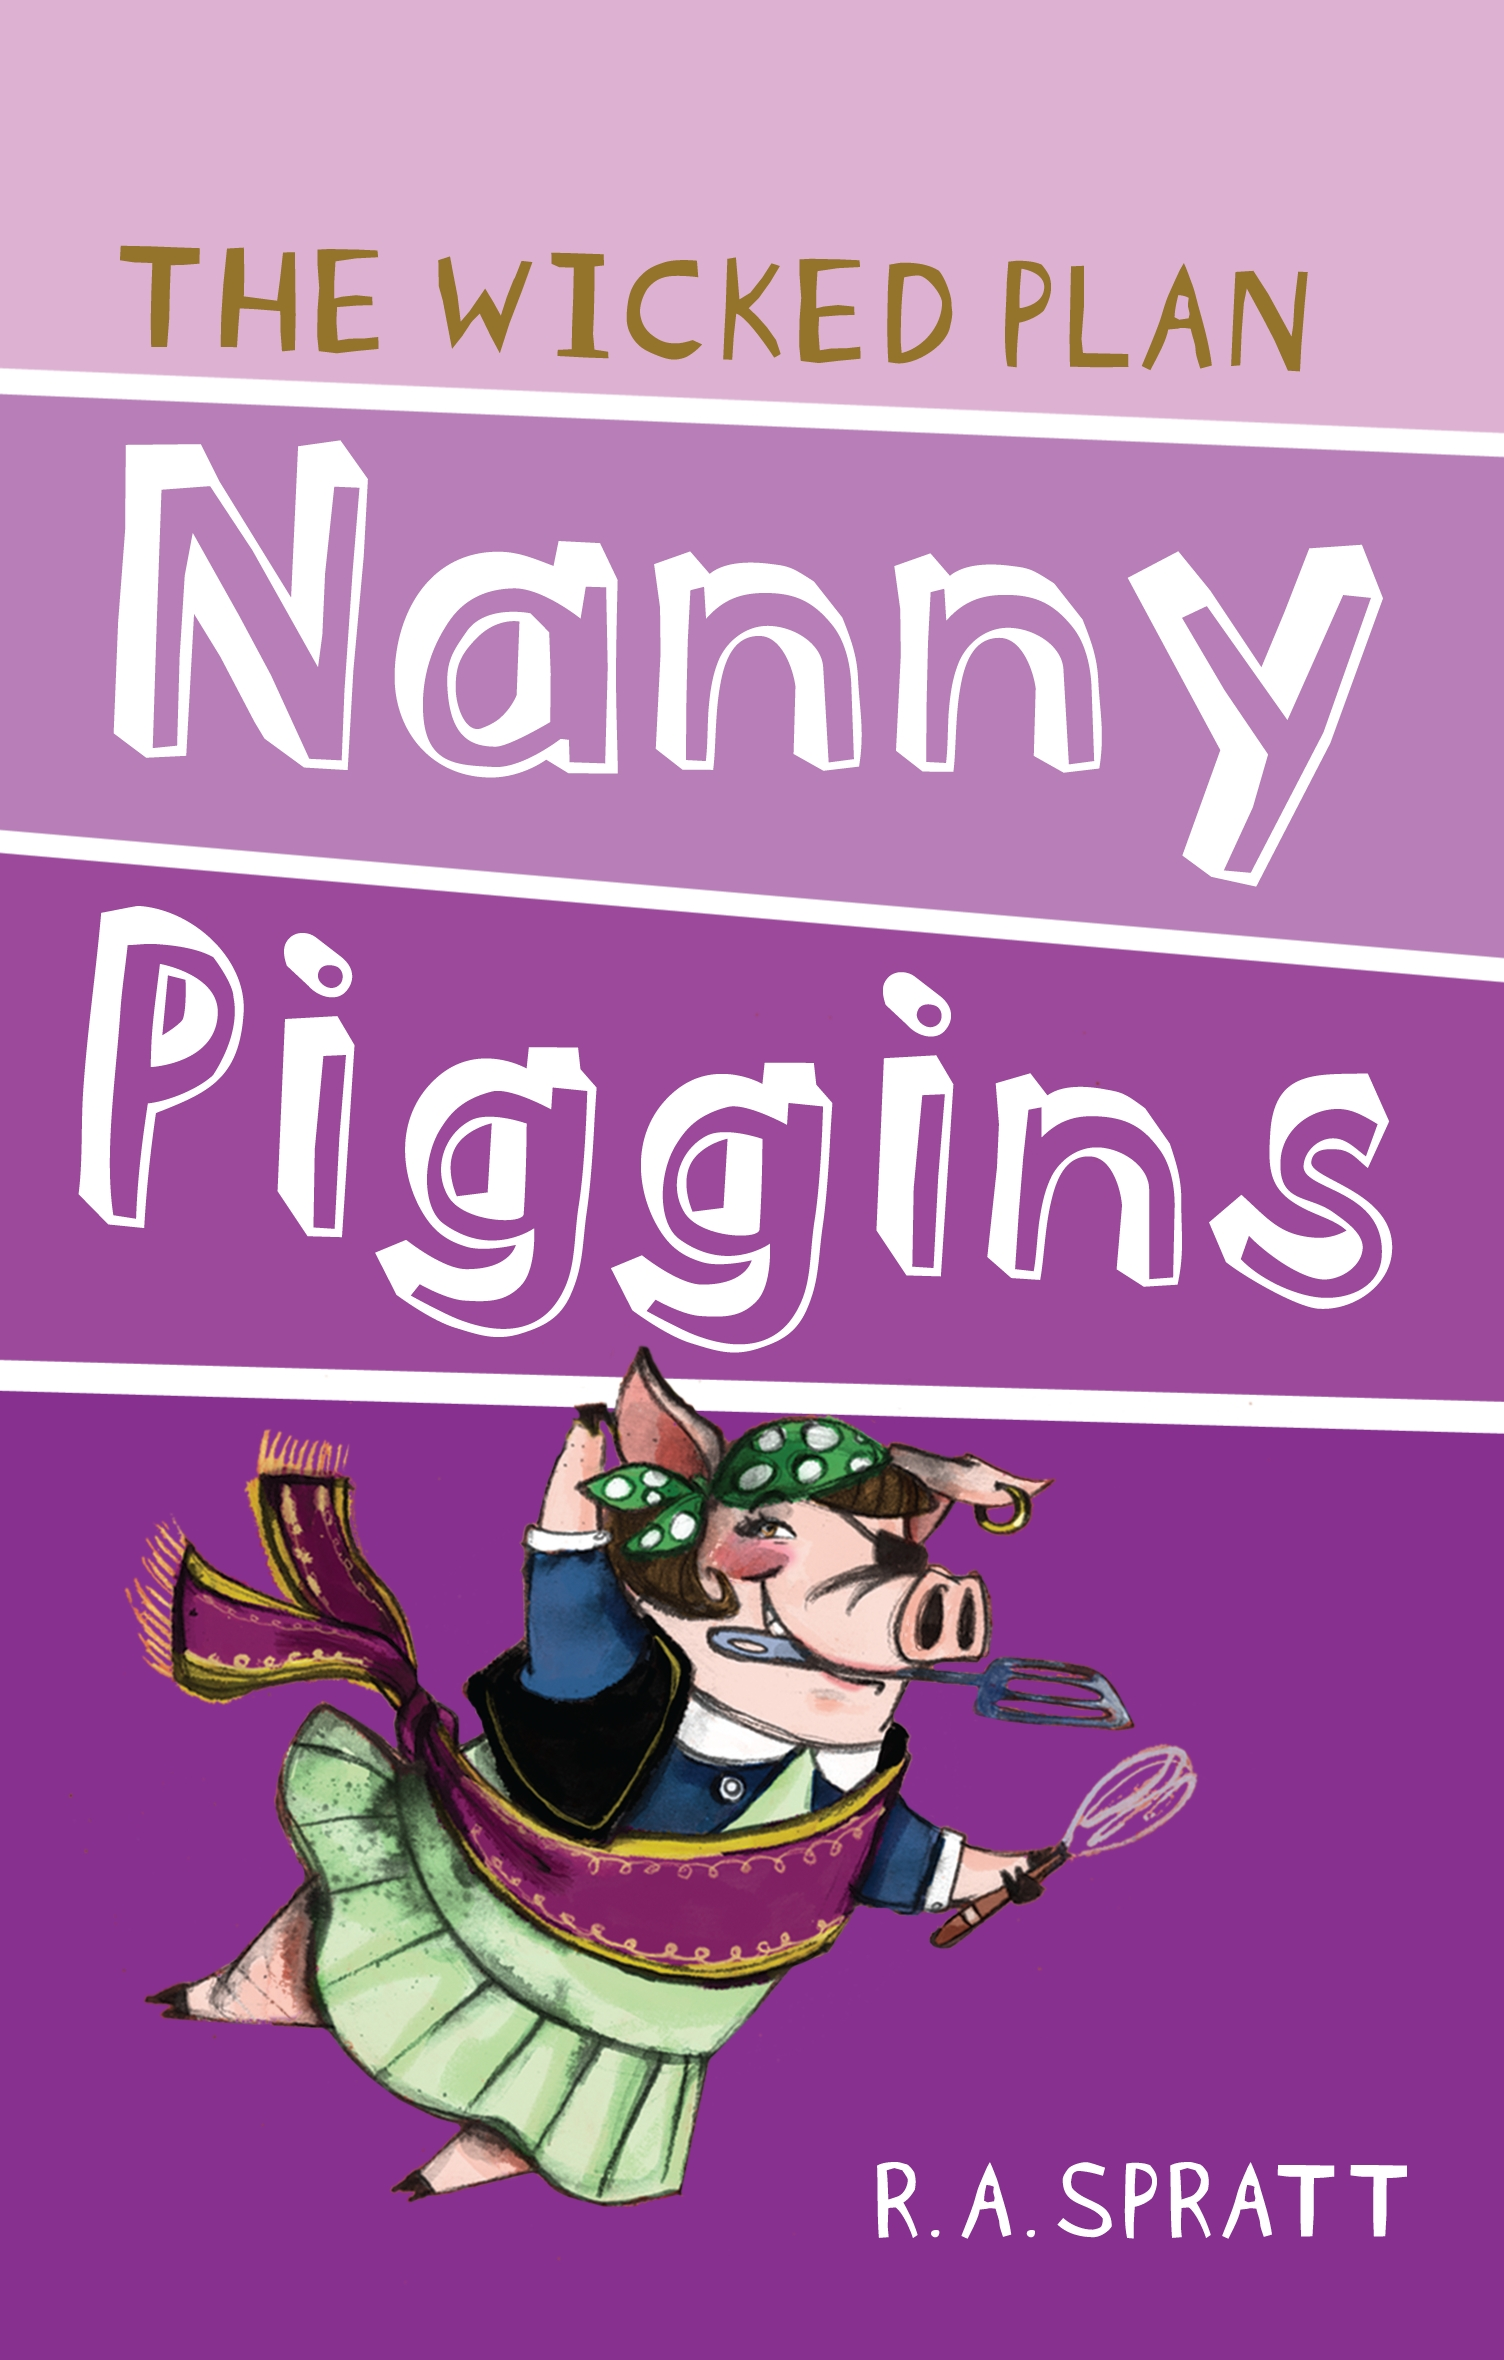 Nanny Piggins And The Wicked Plan 2 By R A Spratt